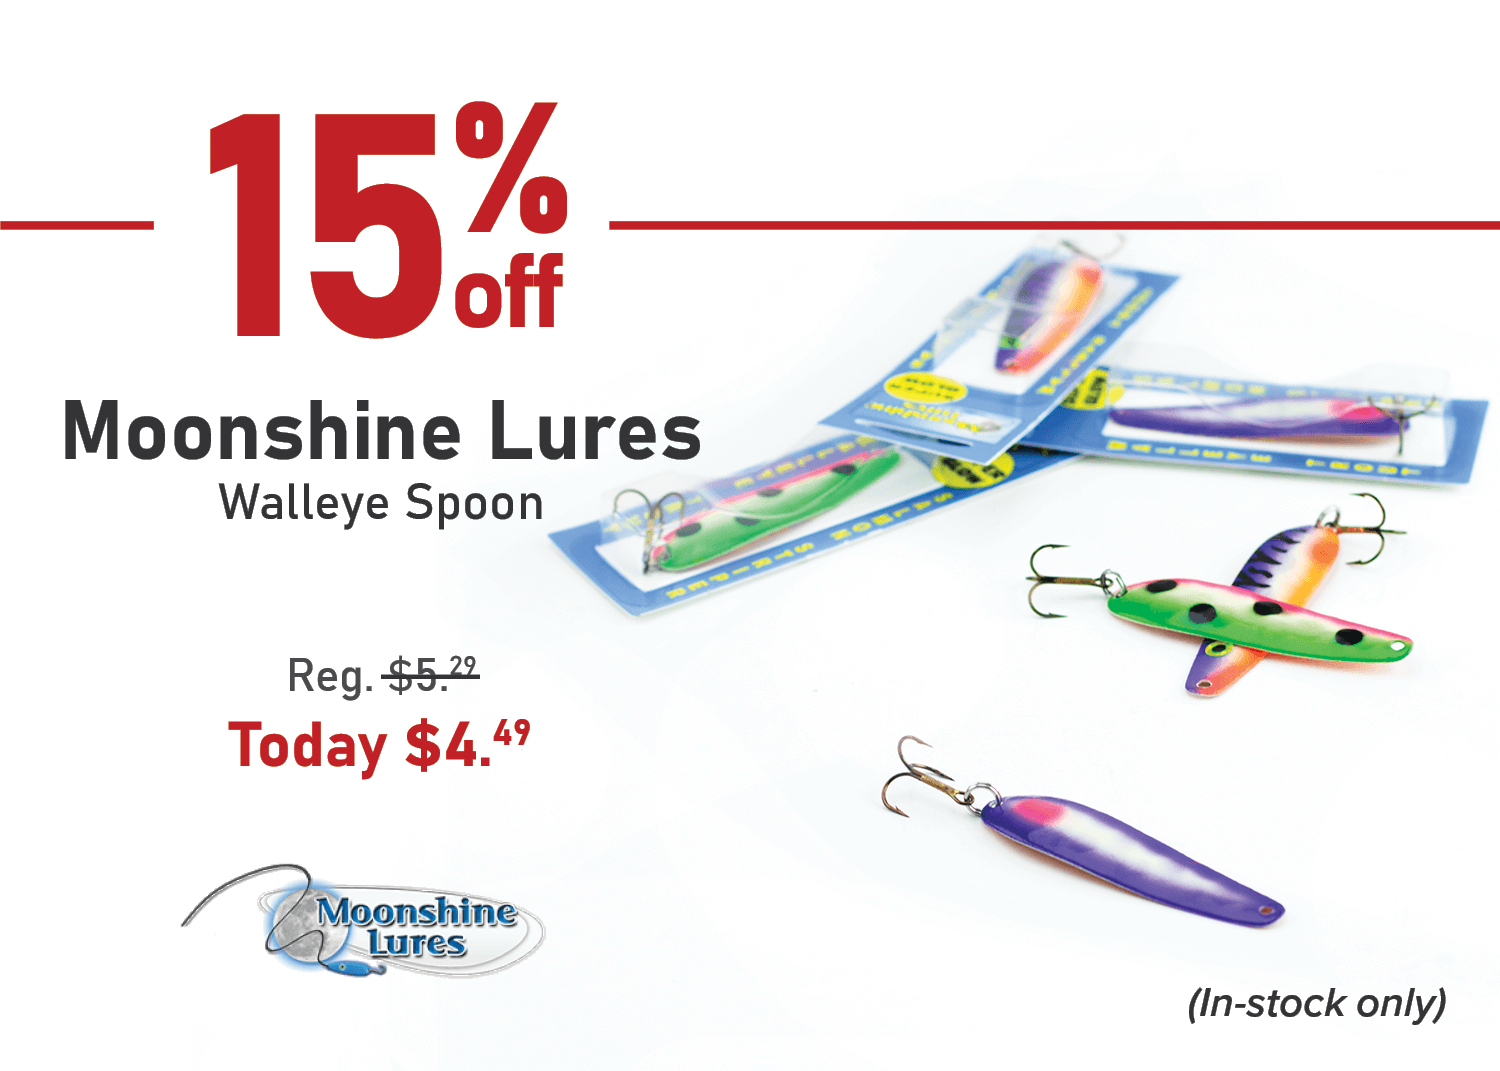 Take 15% off the Moonshine Lures Walleye Spoon